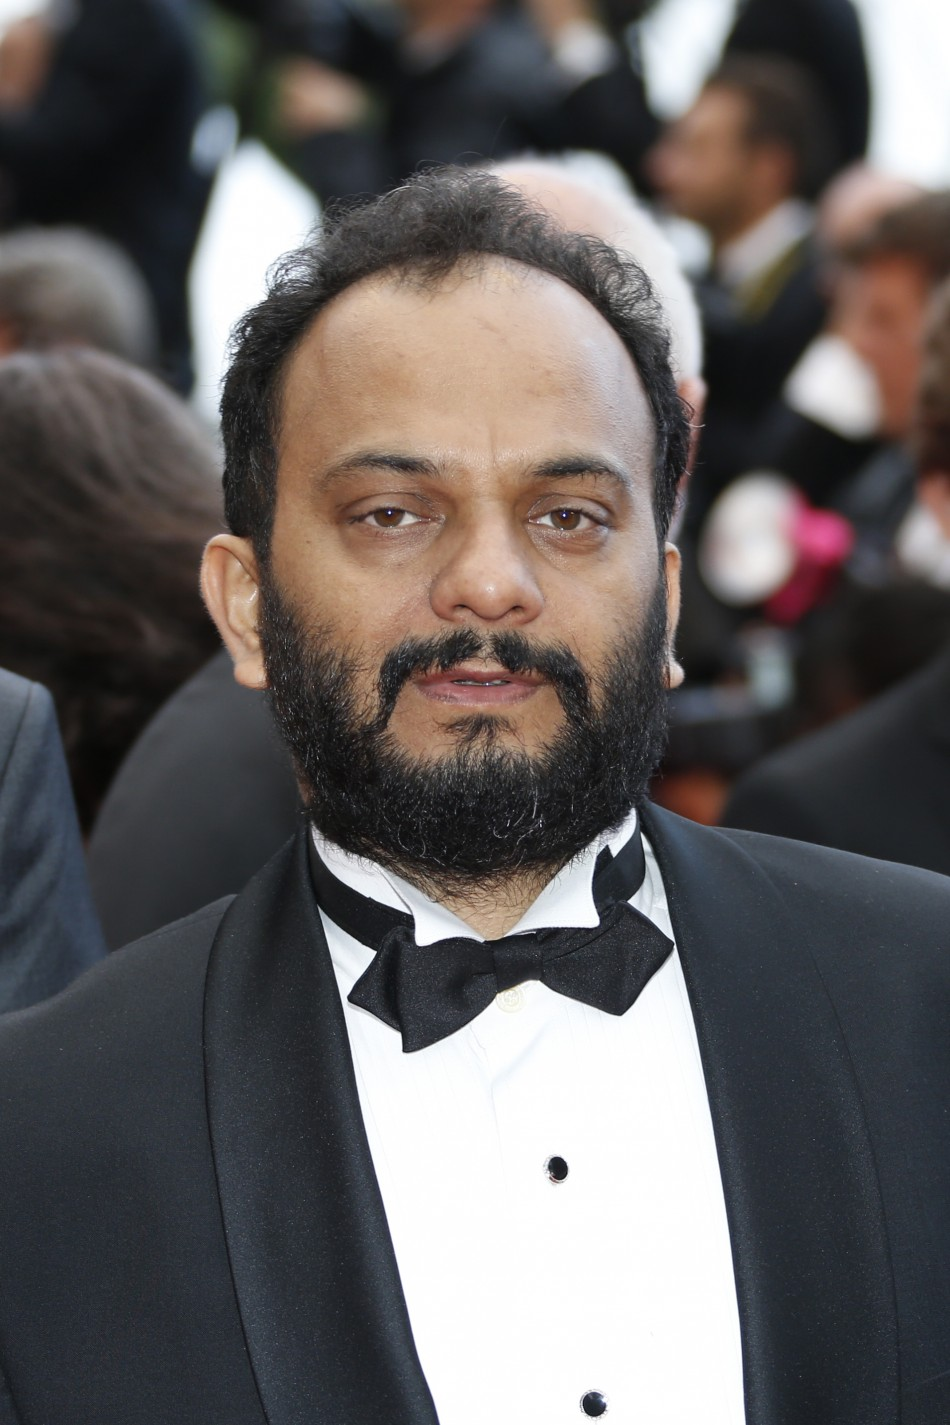 Director Amit Kumar poses on the red carpet as he arrives for the screening of the film Bombay Talkies and the evenings gala celebrating a hundred years of Indian cinema, during the 66th Cannes Film Festival in Cannes May 19, 2013.